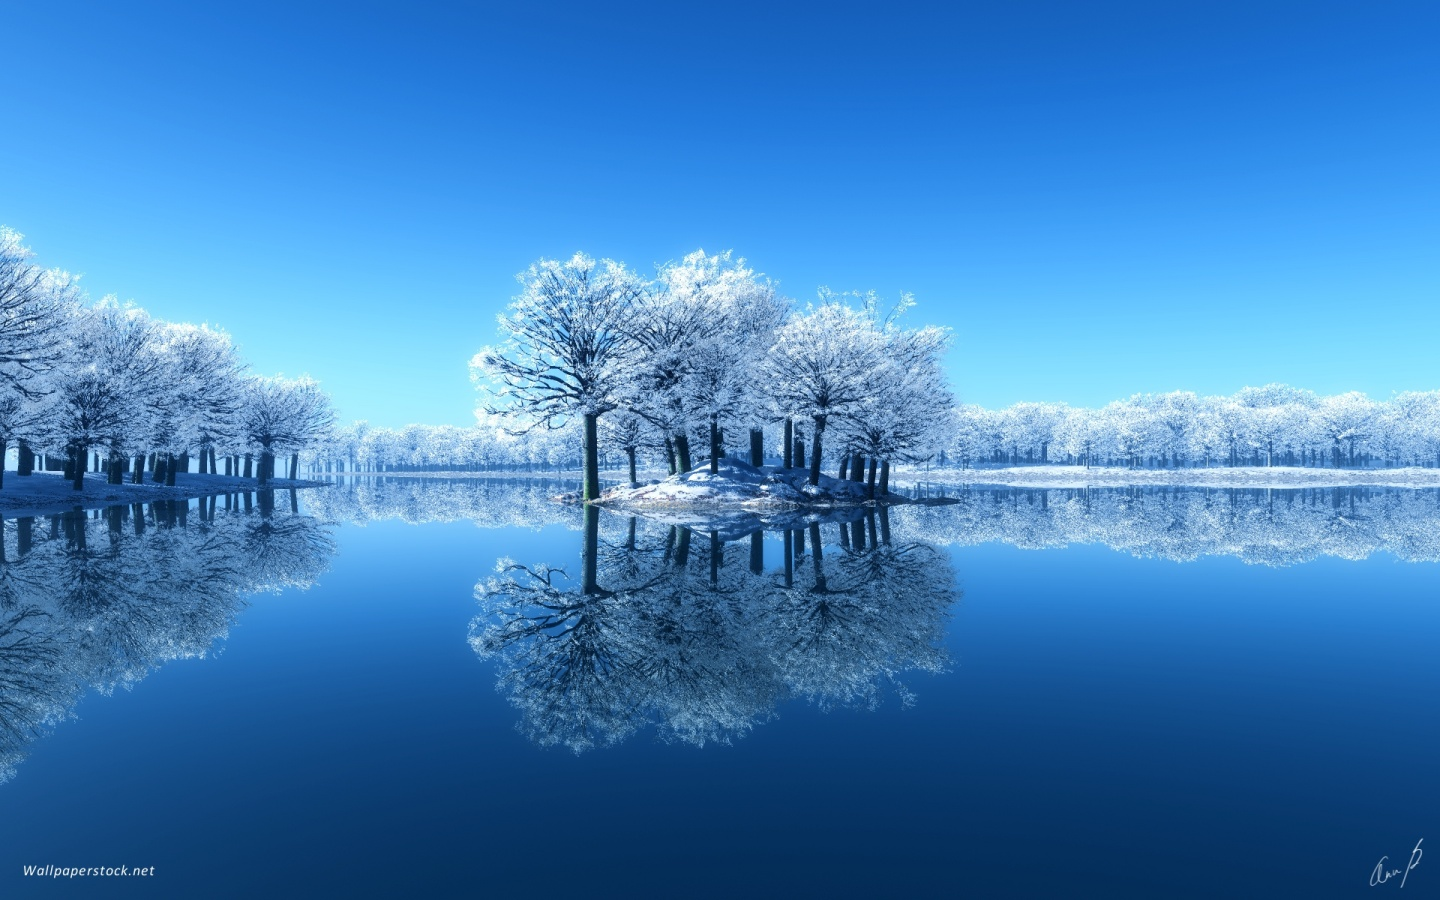 free desktop wallpaper winter scenes   wwwwallpapers in hdcom 1440x900